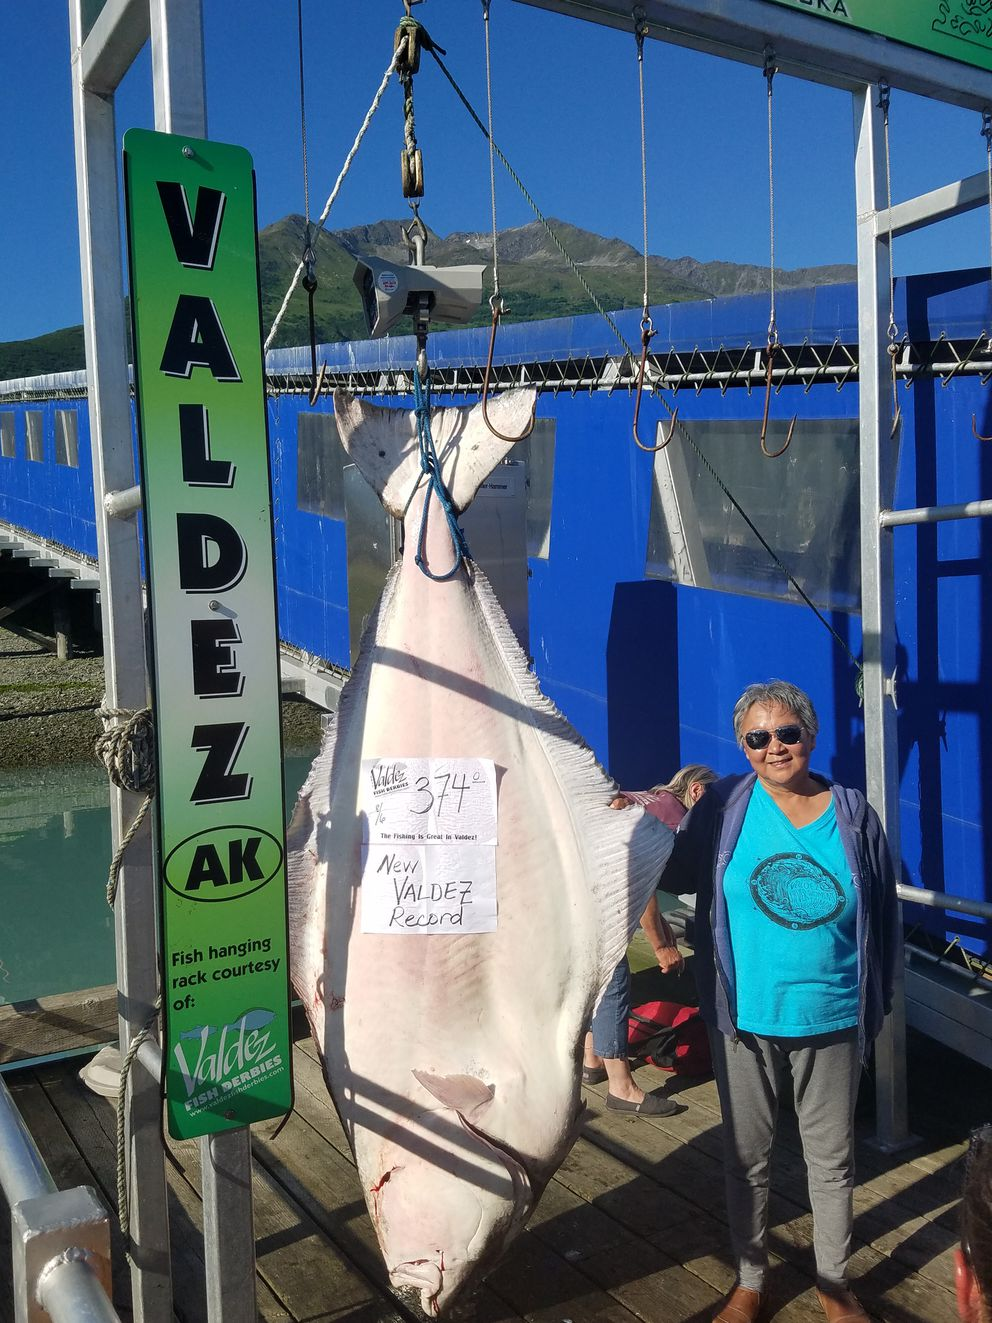 Frieda Wiley, of Valdez, pulled in a record 374 pound halibut during Valdez's Halibut Derby, Sunday, August 6, 2017. (Valdez Fish Derbies)